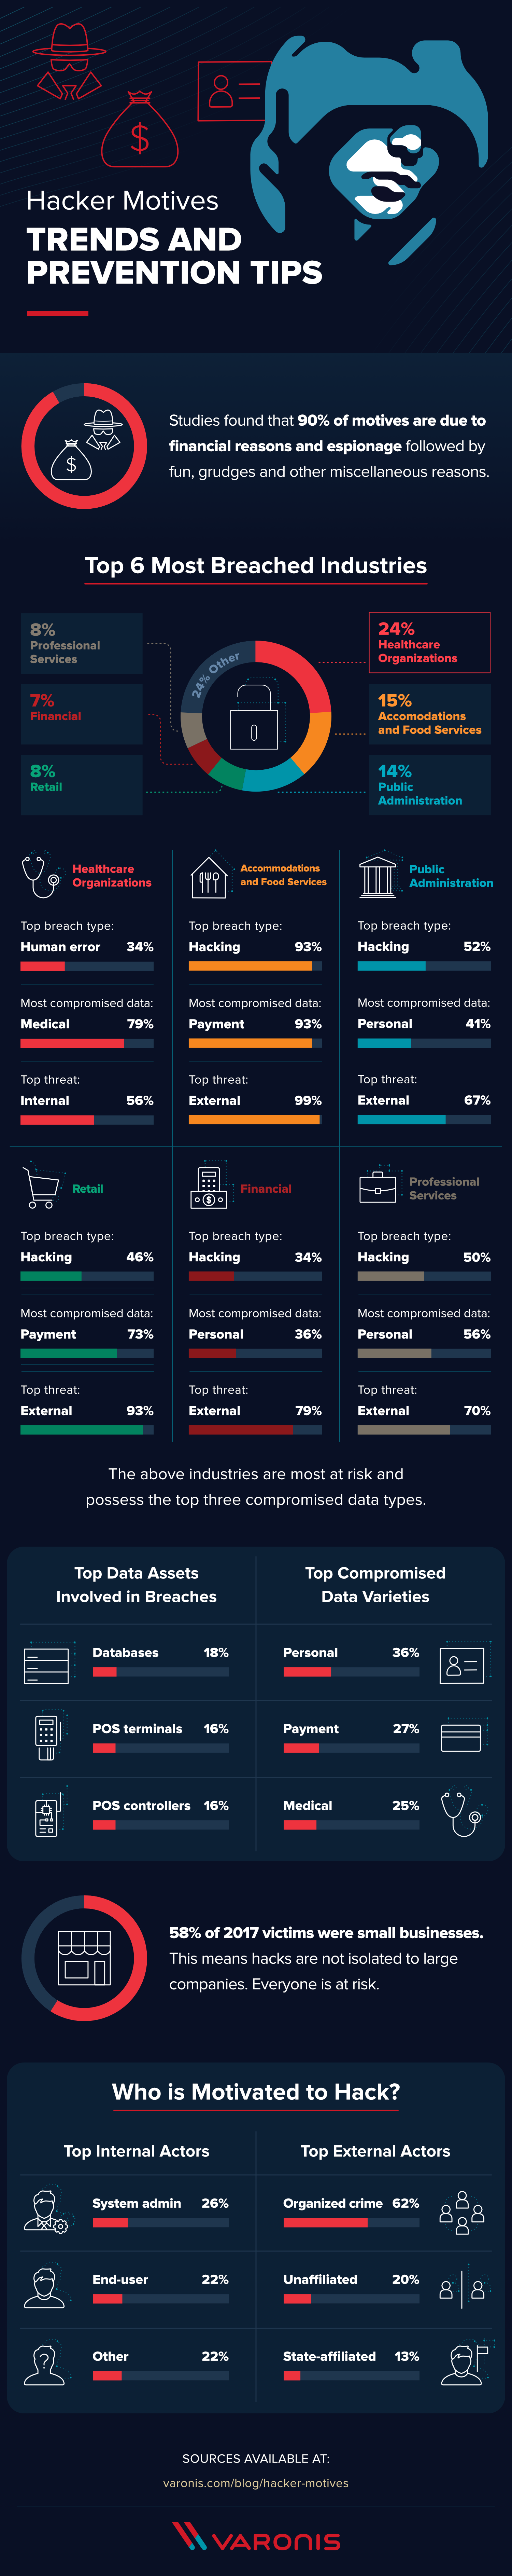 Hacker motives identified - Infographic